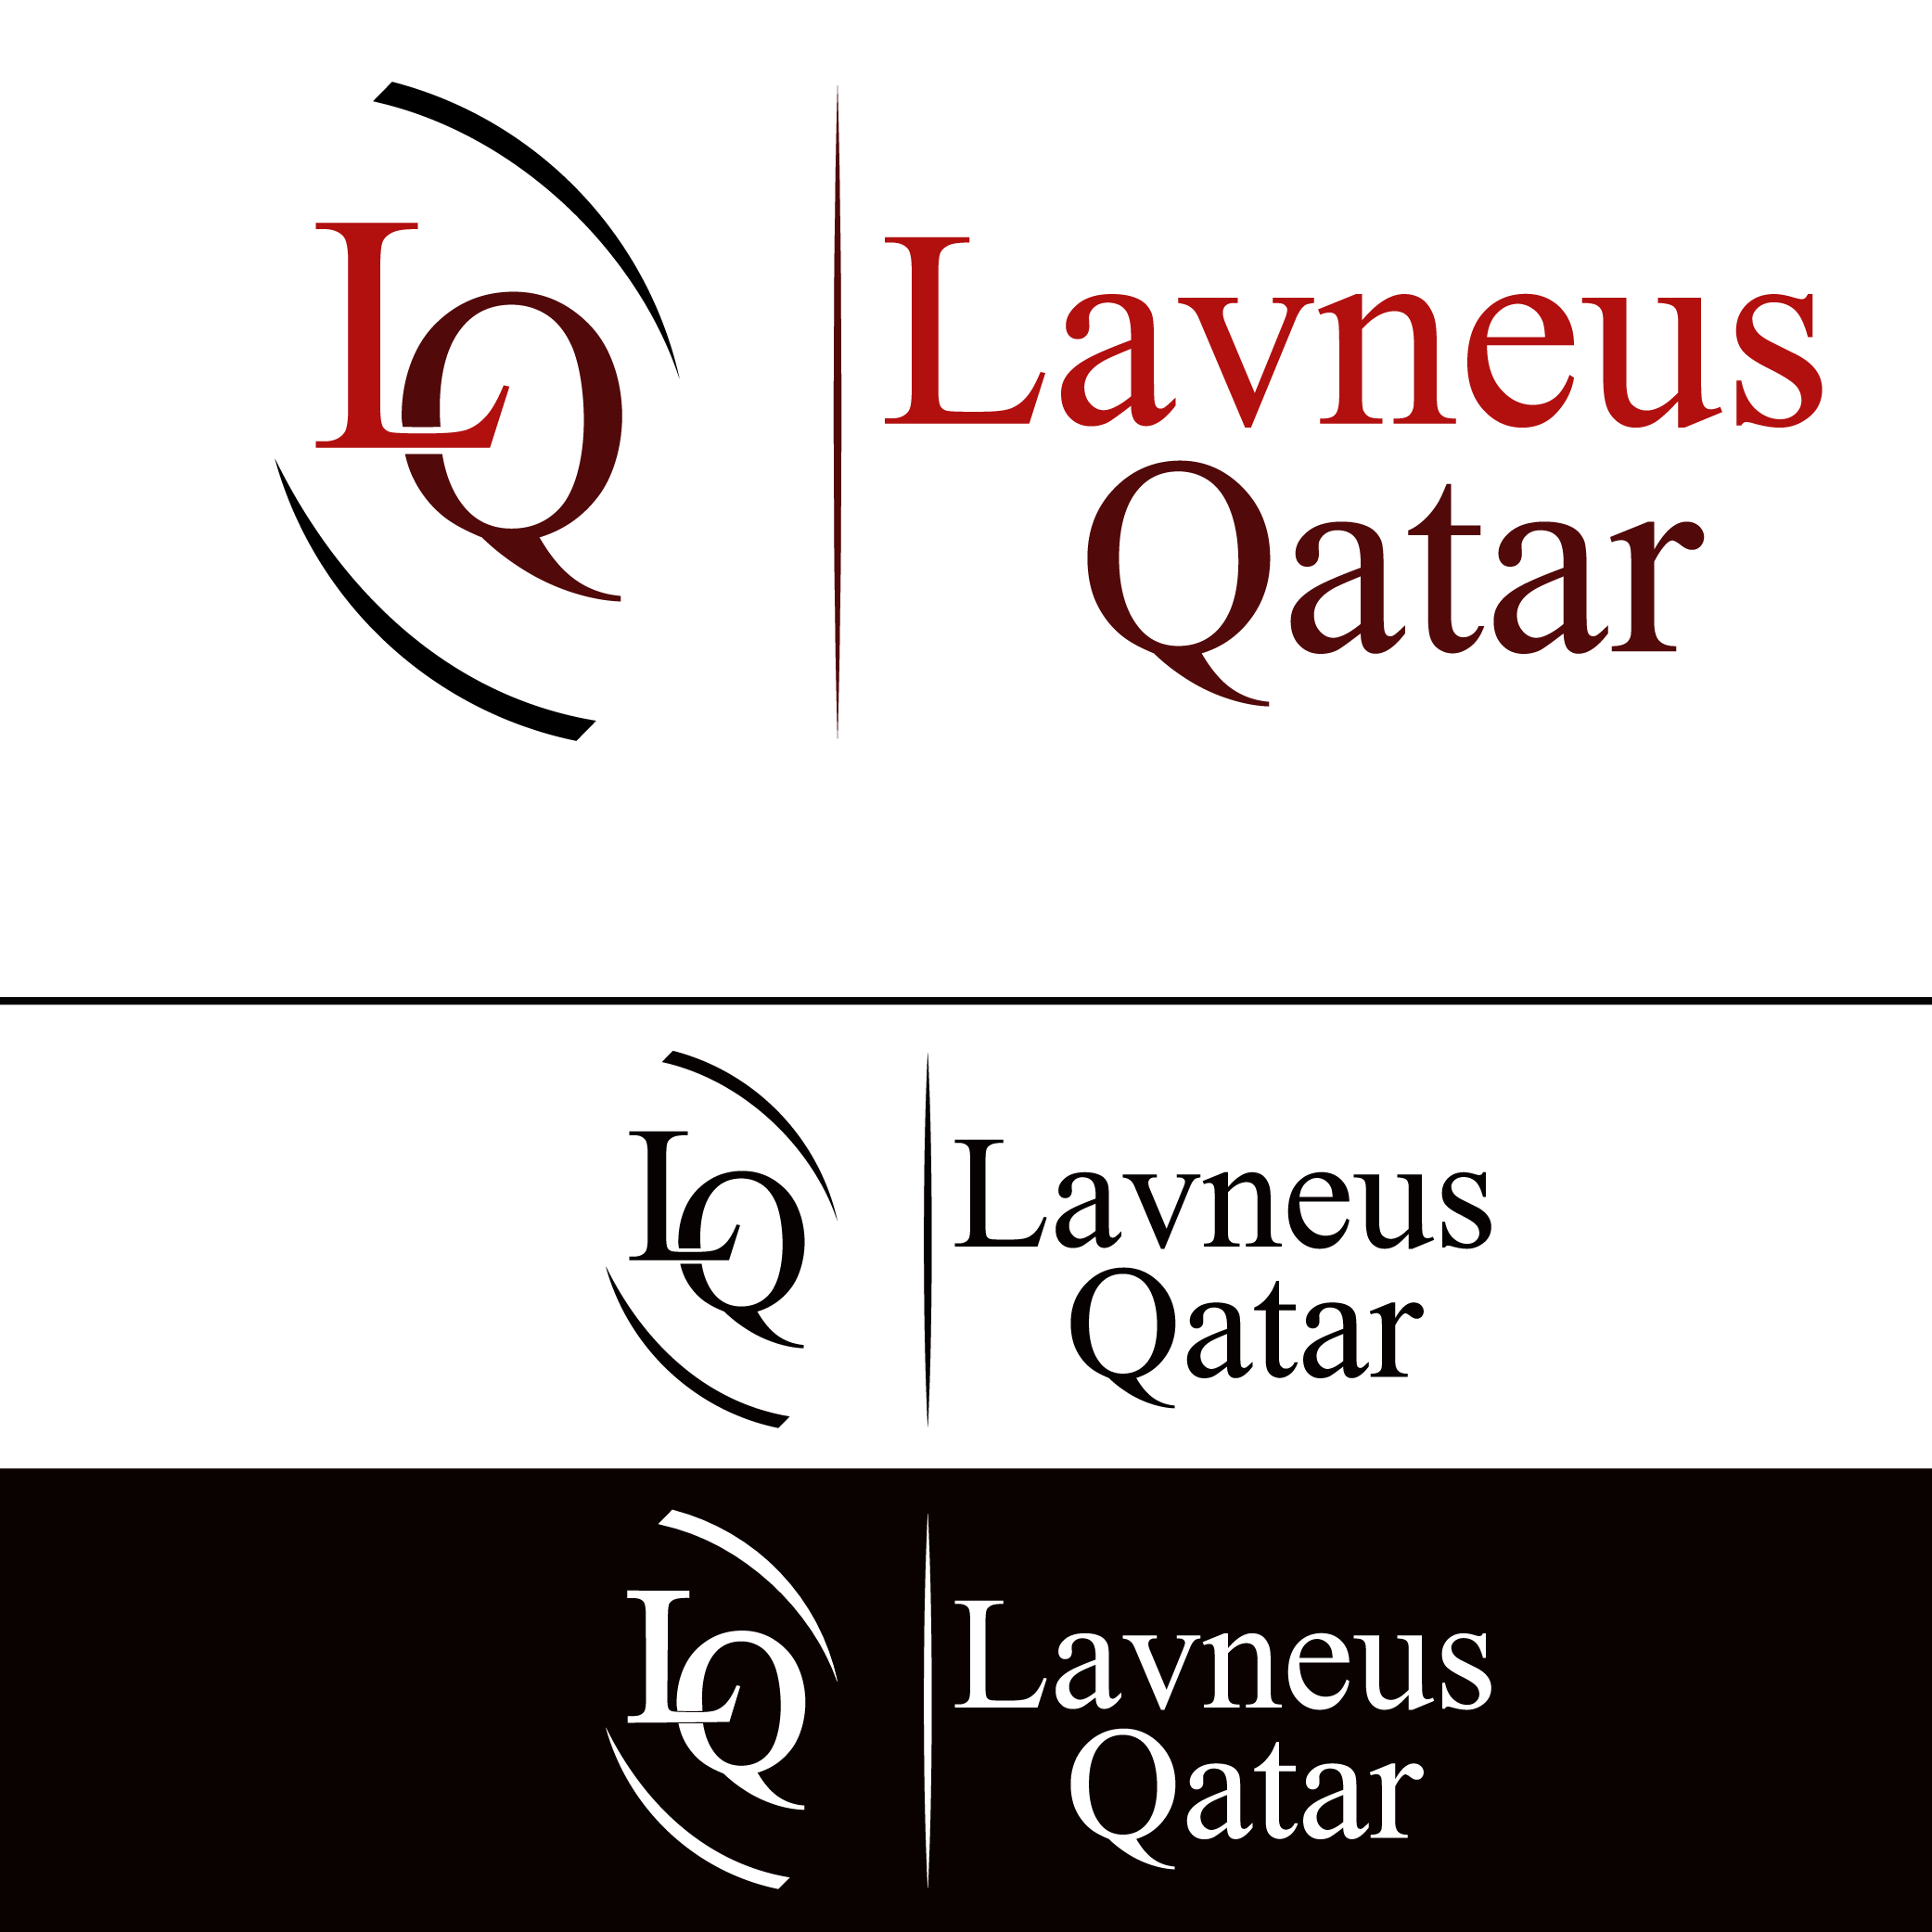 Logo Design by Shakir Alzadjali - Entry No. 65 in the Logo Design Contest Imaginative Logo Design for lavneus qatar.